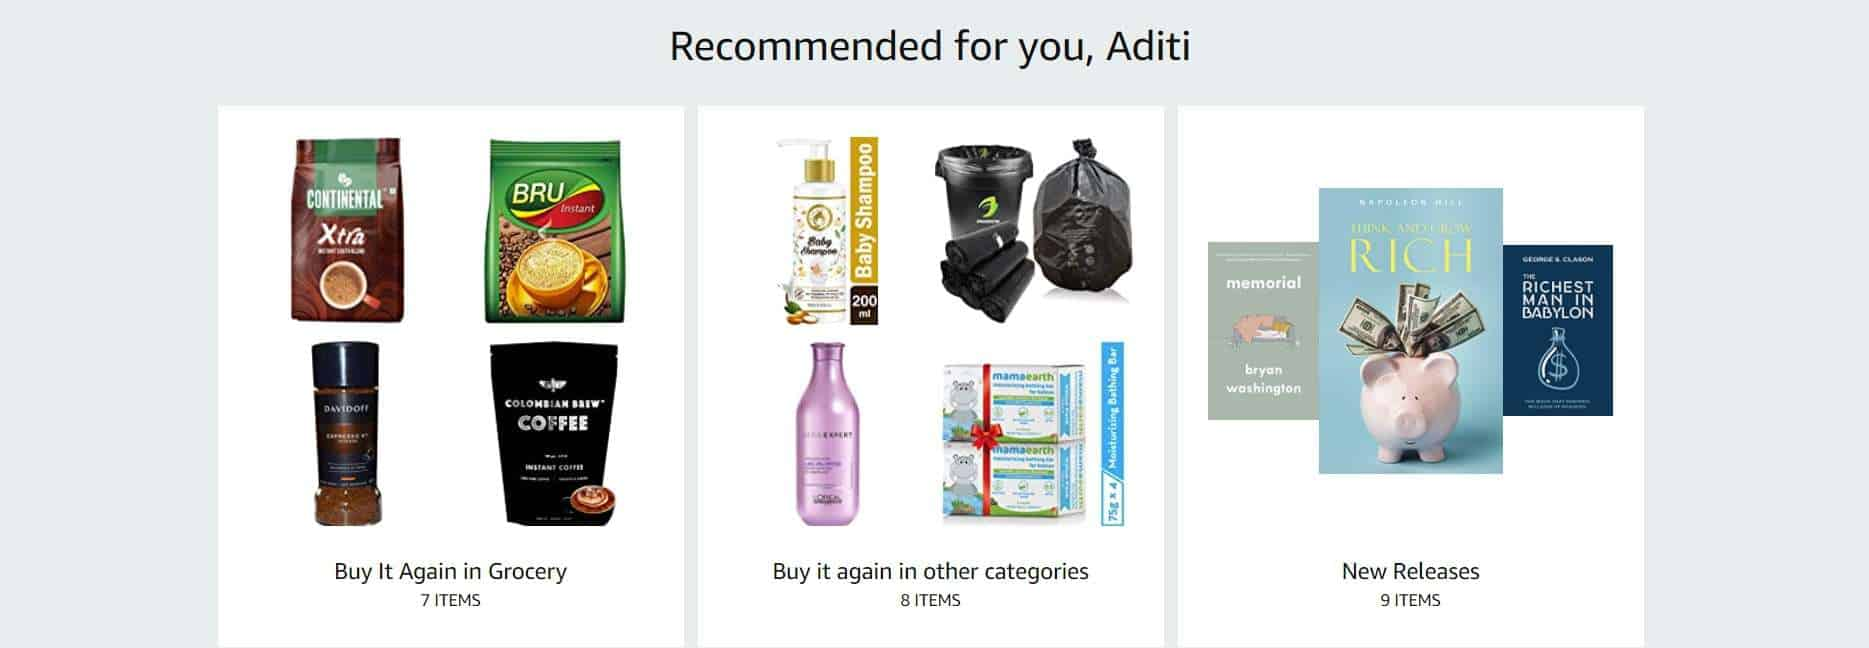 personalizing product recommendations